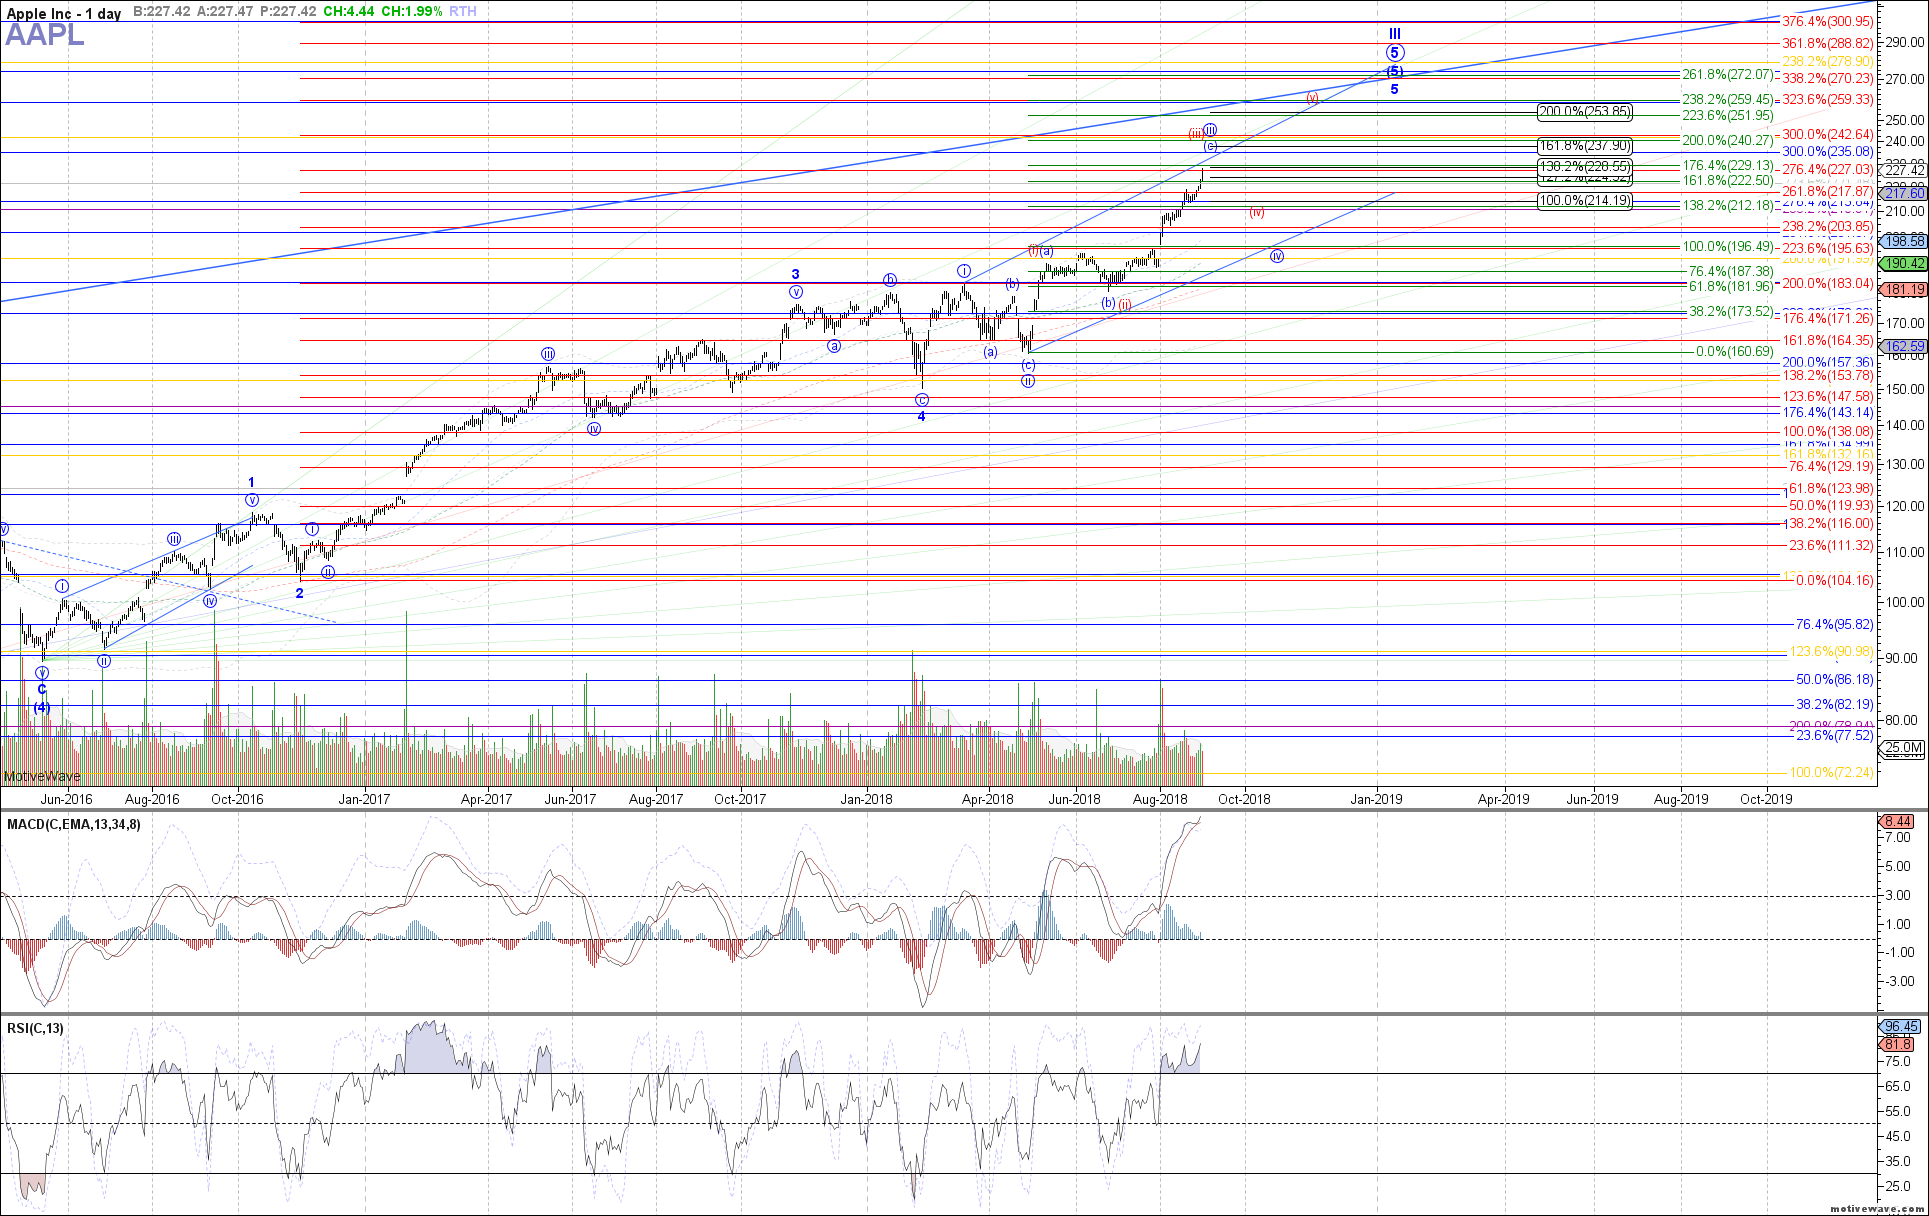 AAPL - Primary Analysis - Aug-30 1026 AM (1 day)